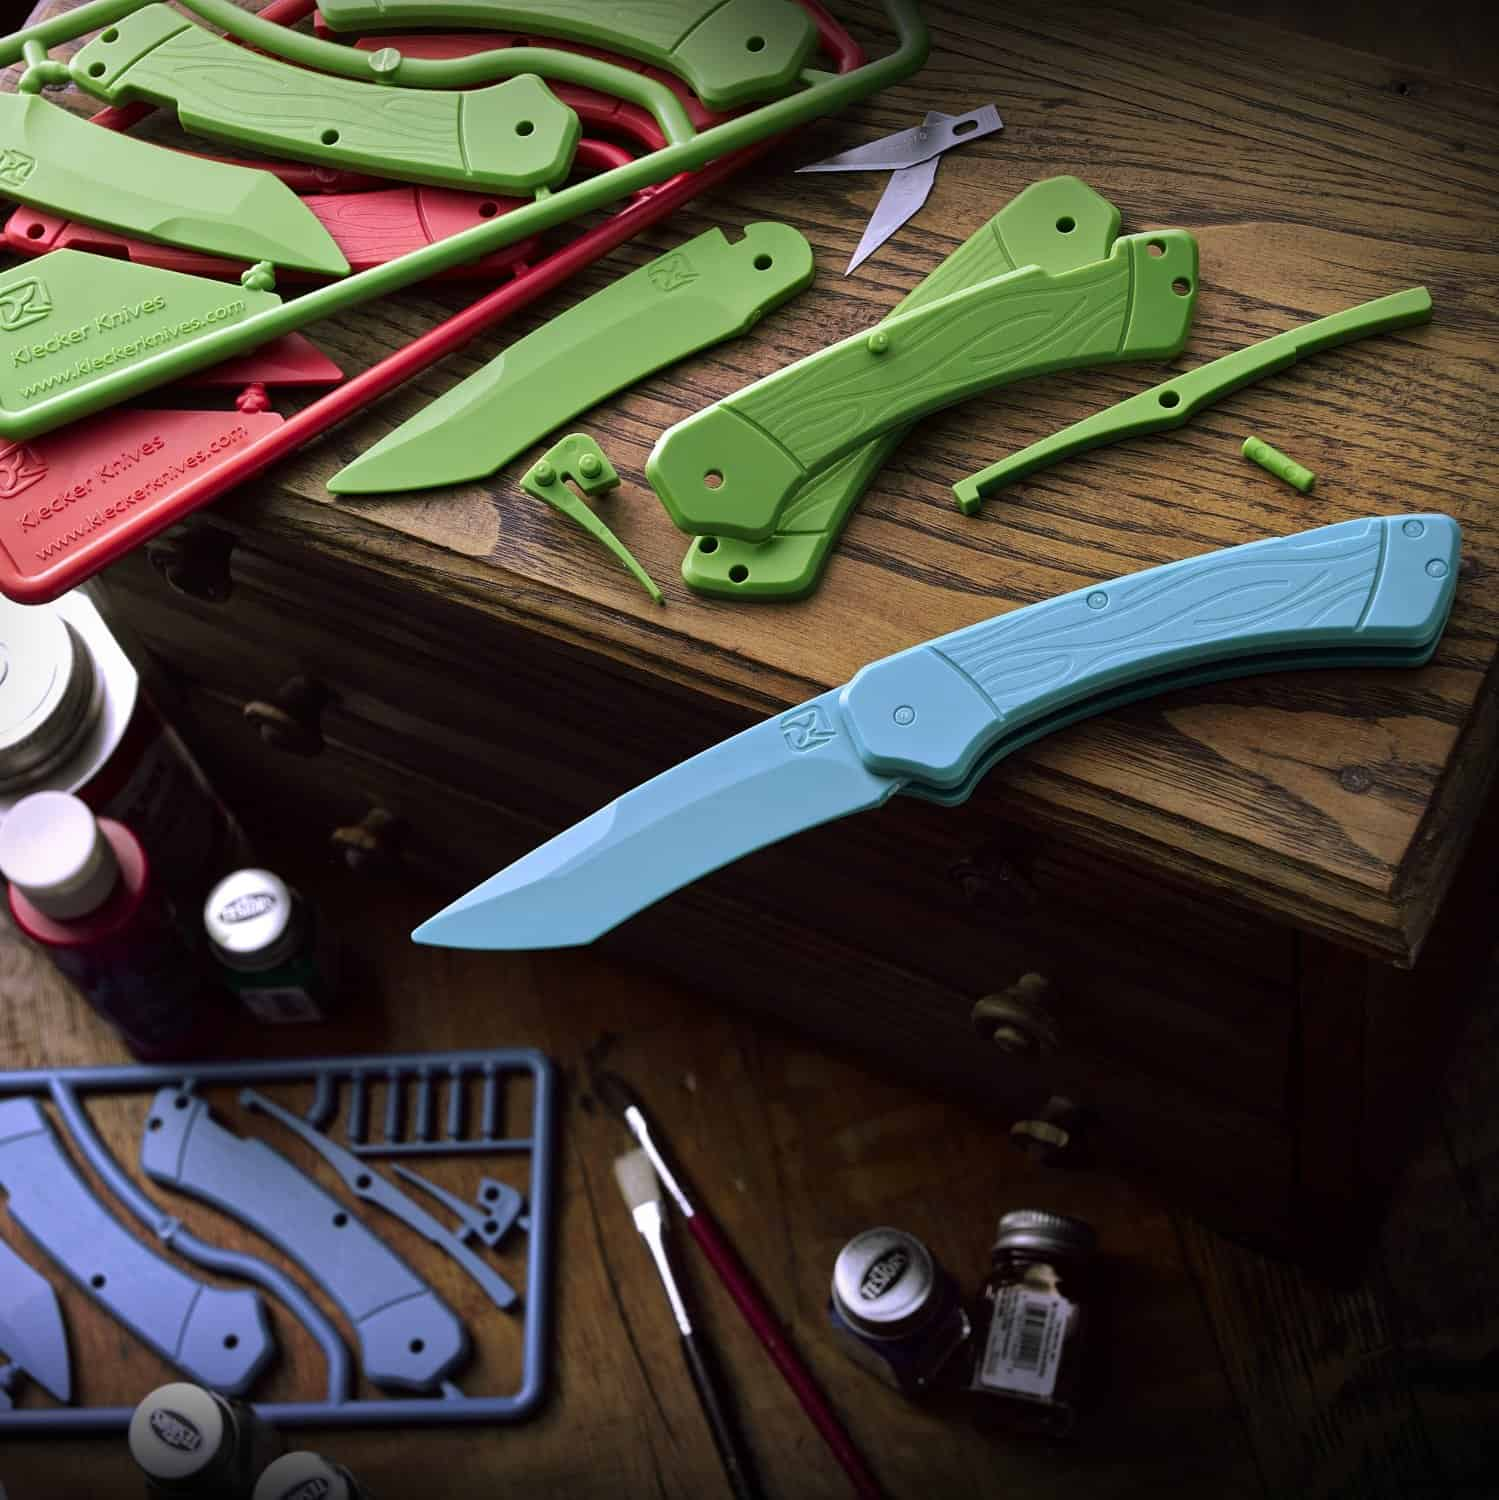 DIY Trigger Knife Kit Fun Activity with Kids Build a Plastic Knife